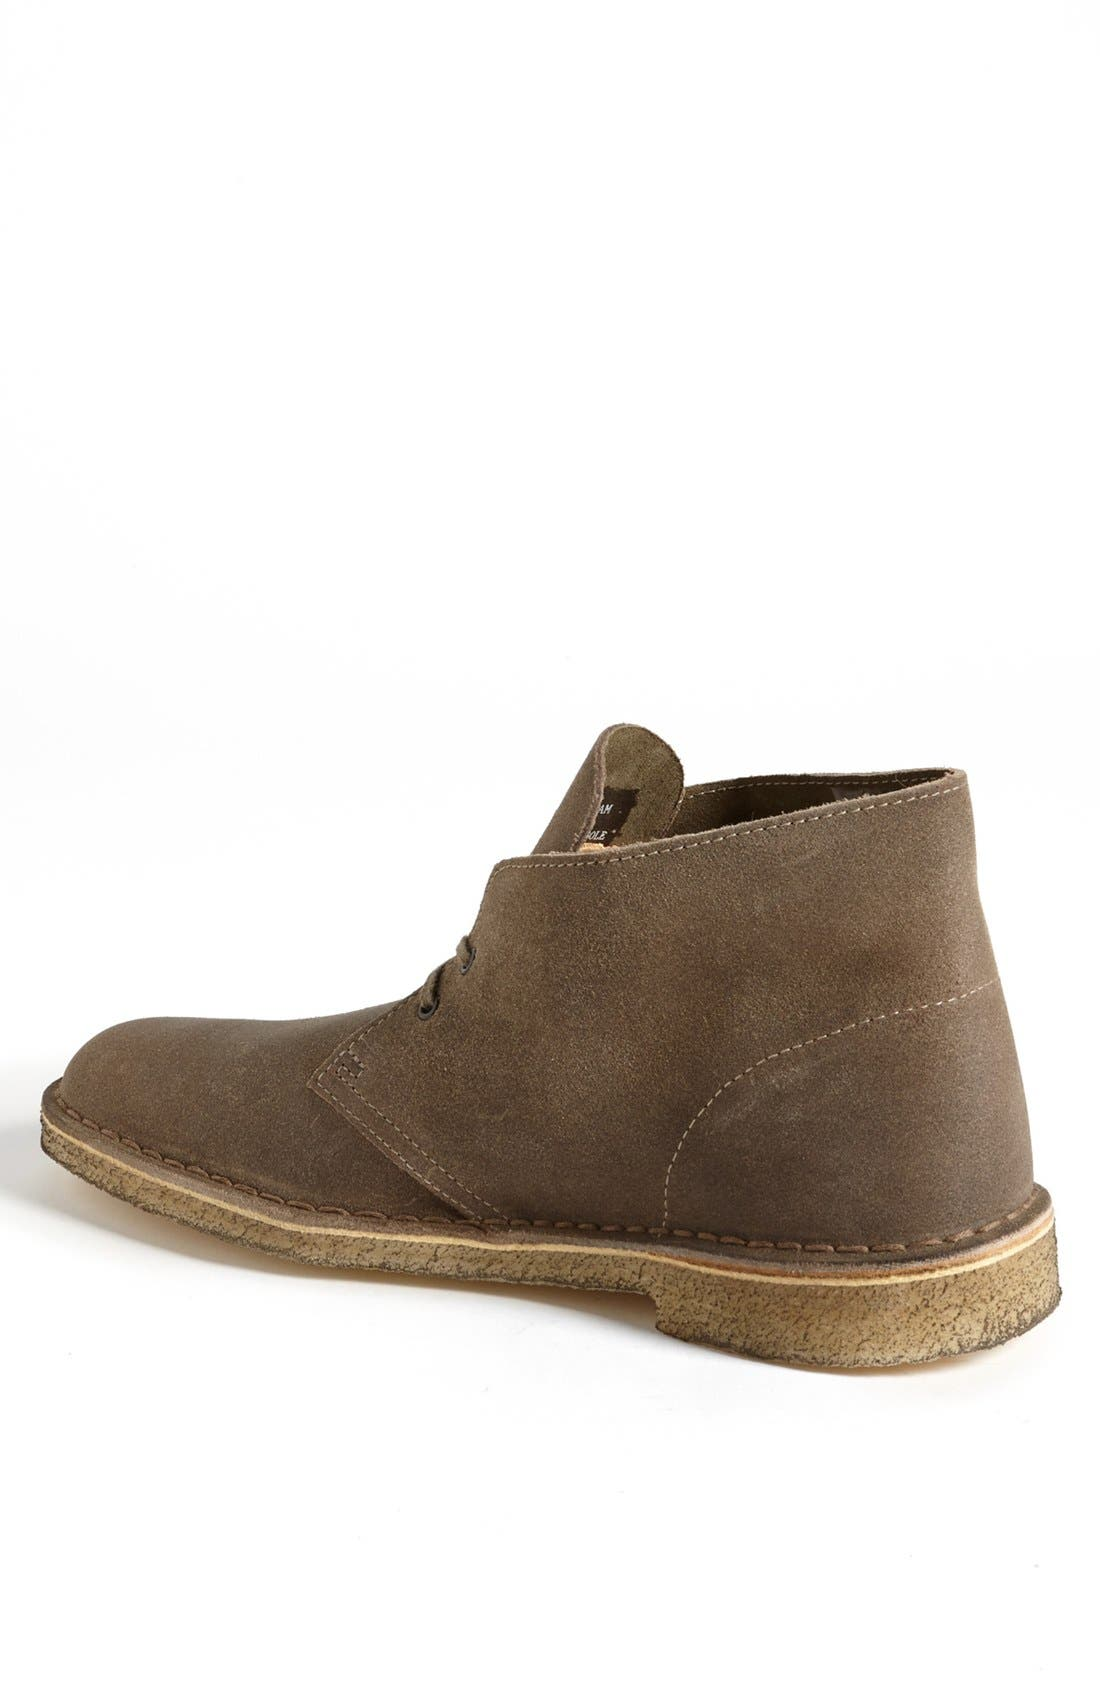 'Desert' Boot,                             Alternate thumbnail 6, color,                             TAUPE DISTRESSED SUEDE